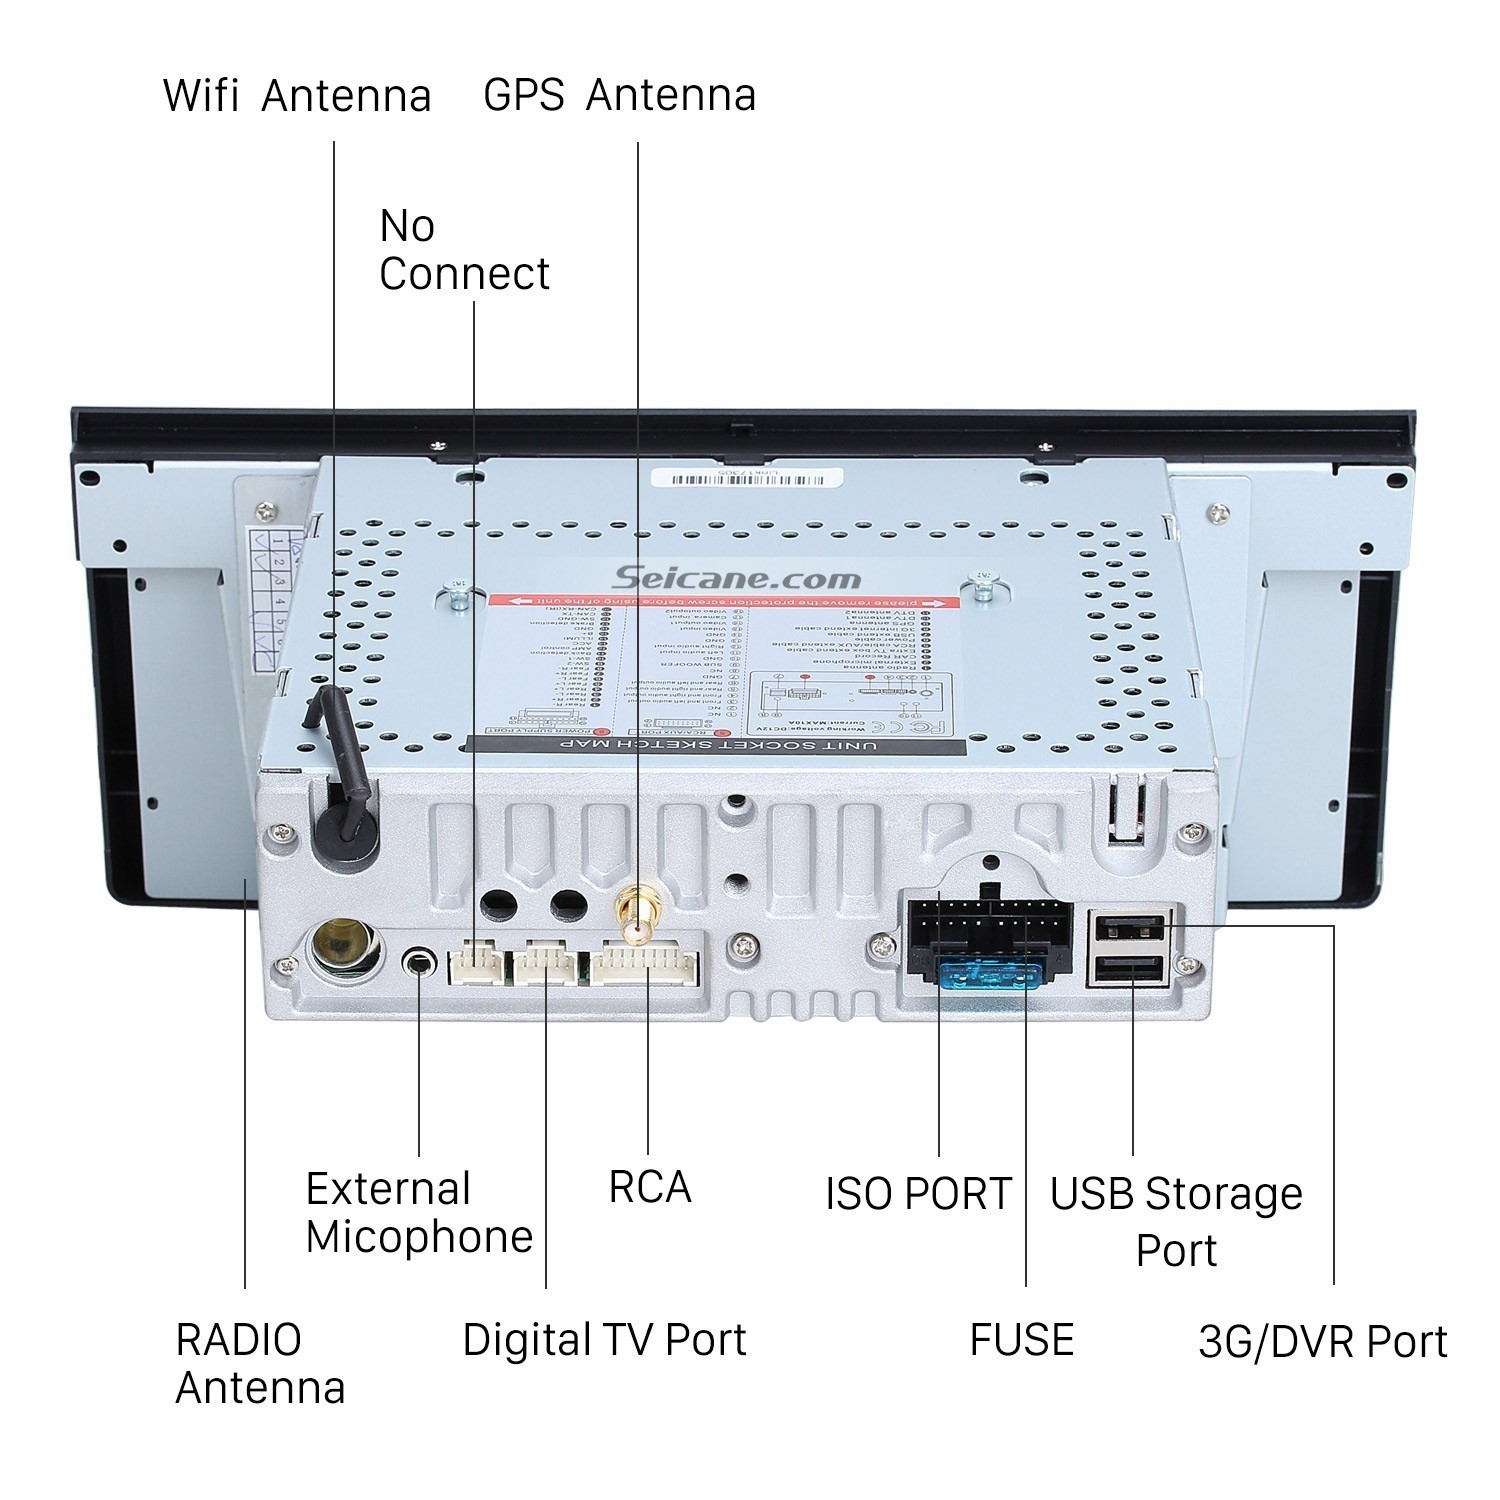 Bus Air Brake System Diagram Wiring Diagram In A Car Valid Light Rx Lovely Car Stereo Wiring Of Bus Air Brake System Diagram